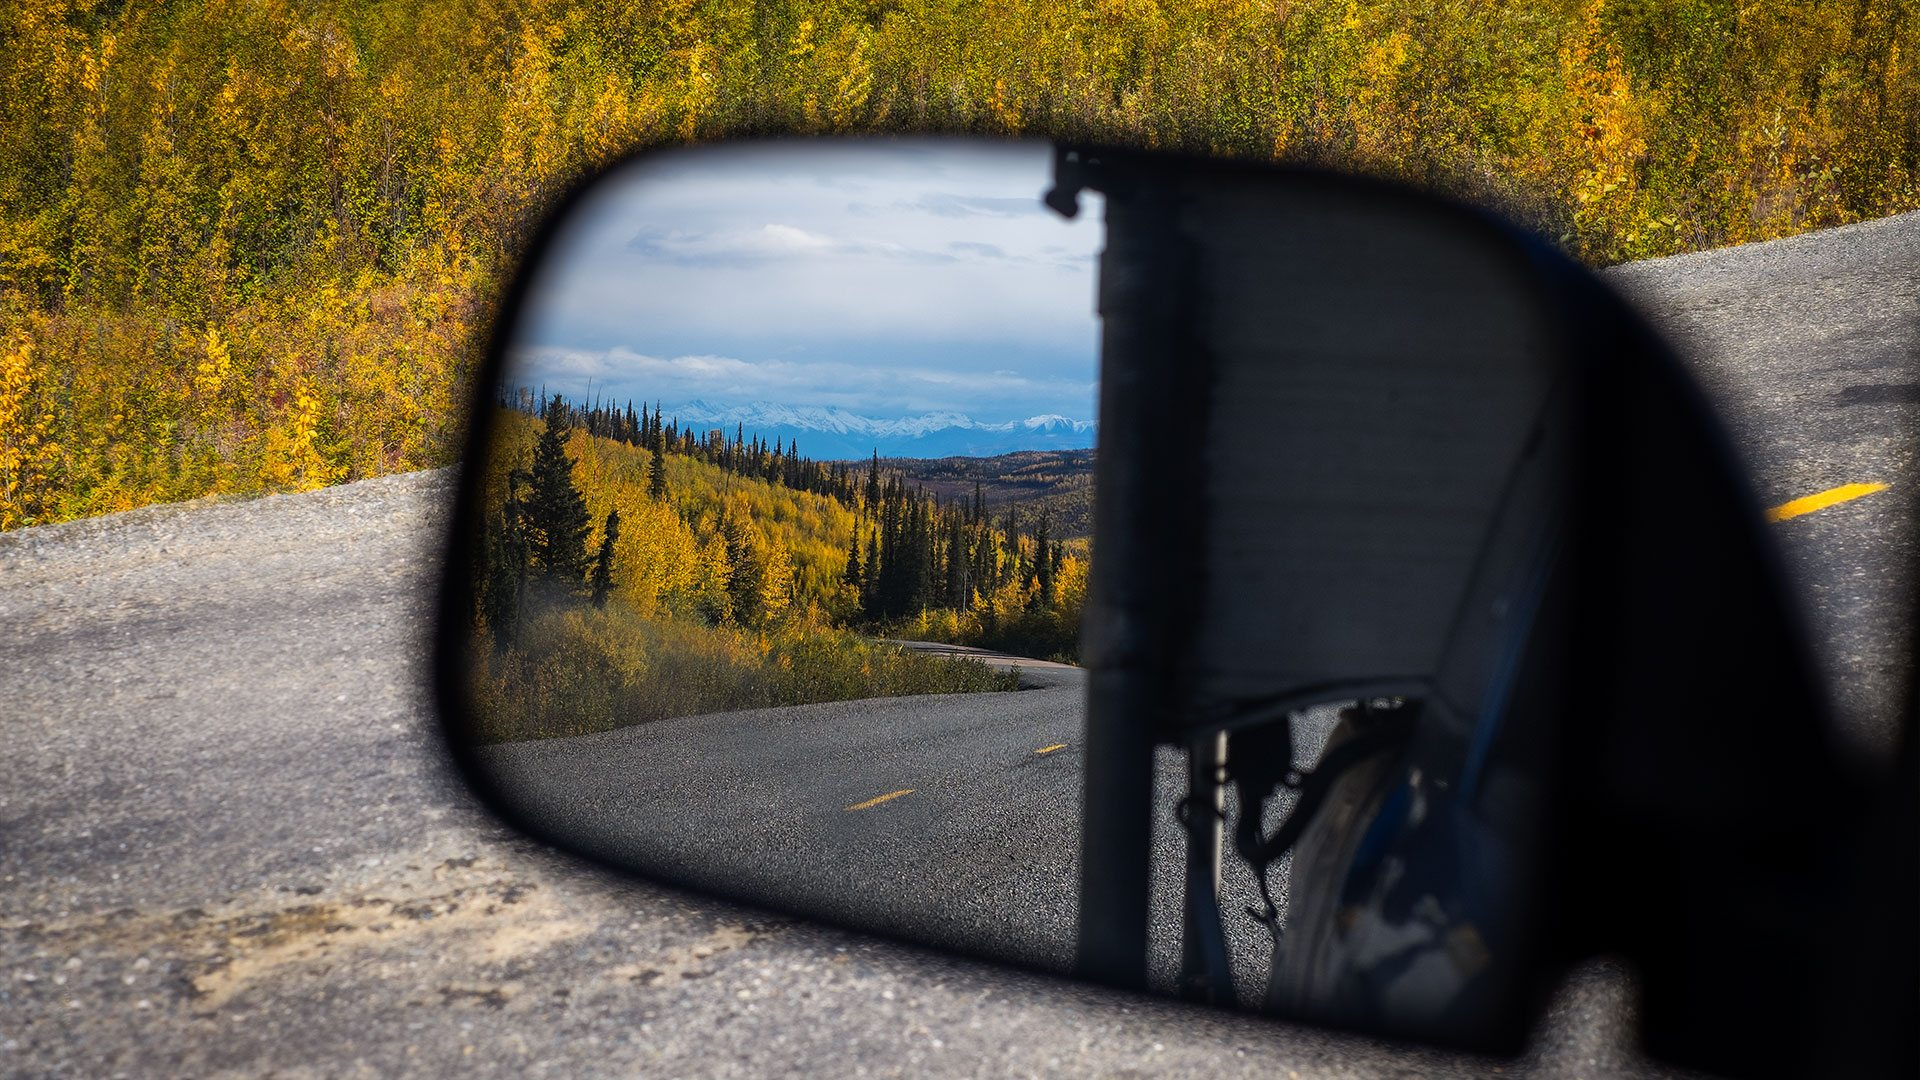 Landscape in the side-view mirror, Alaska, USA